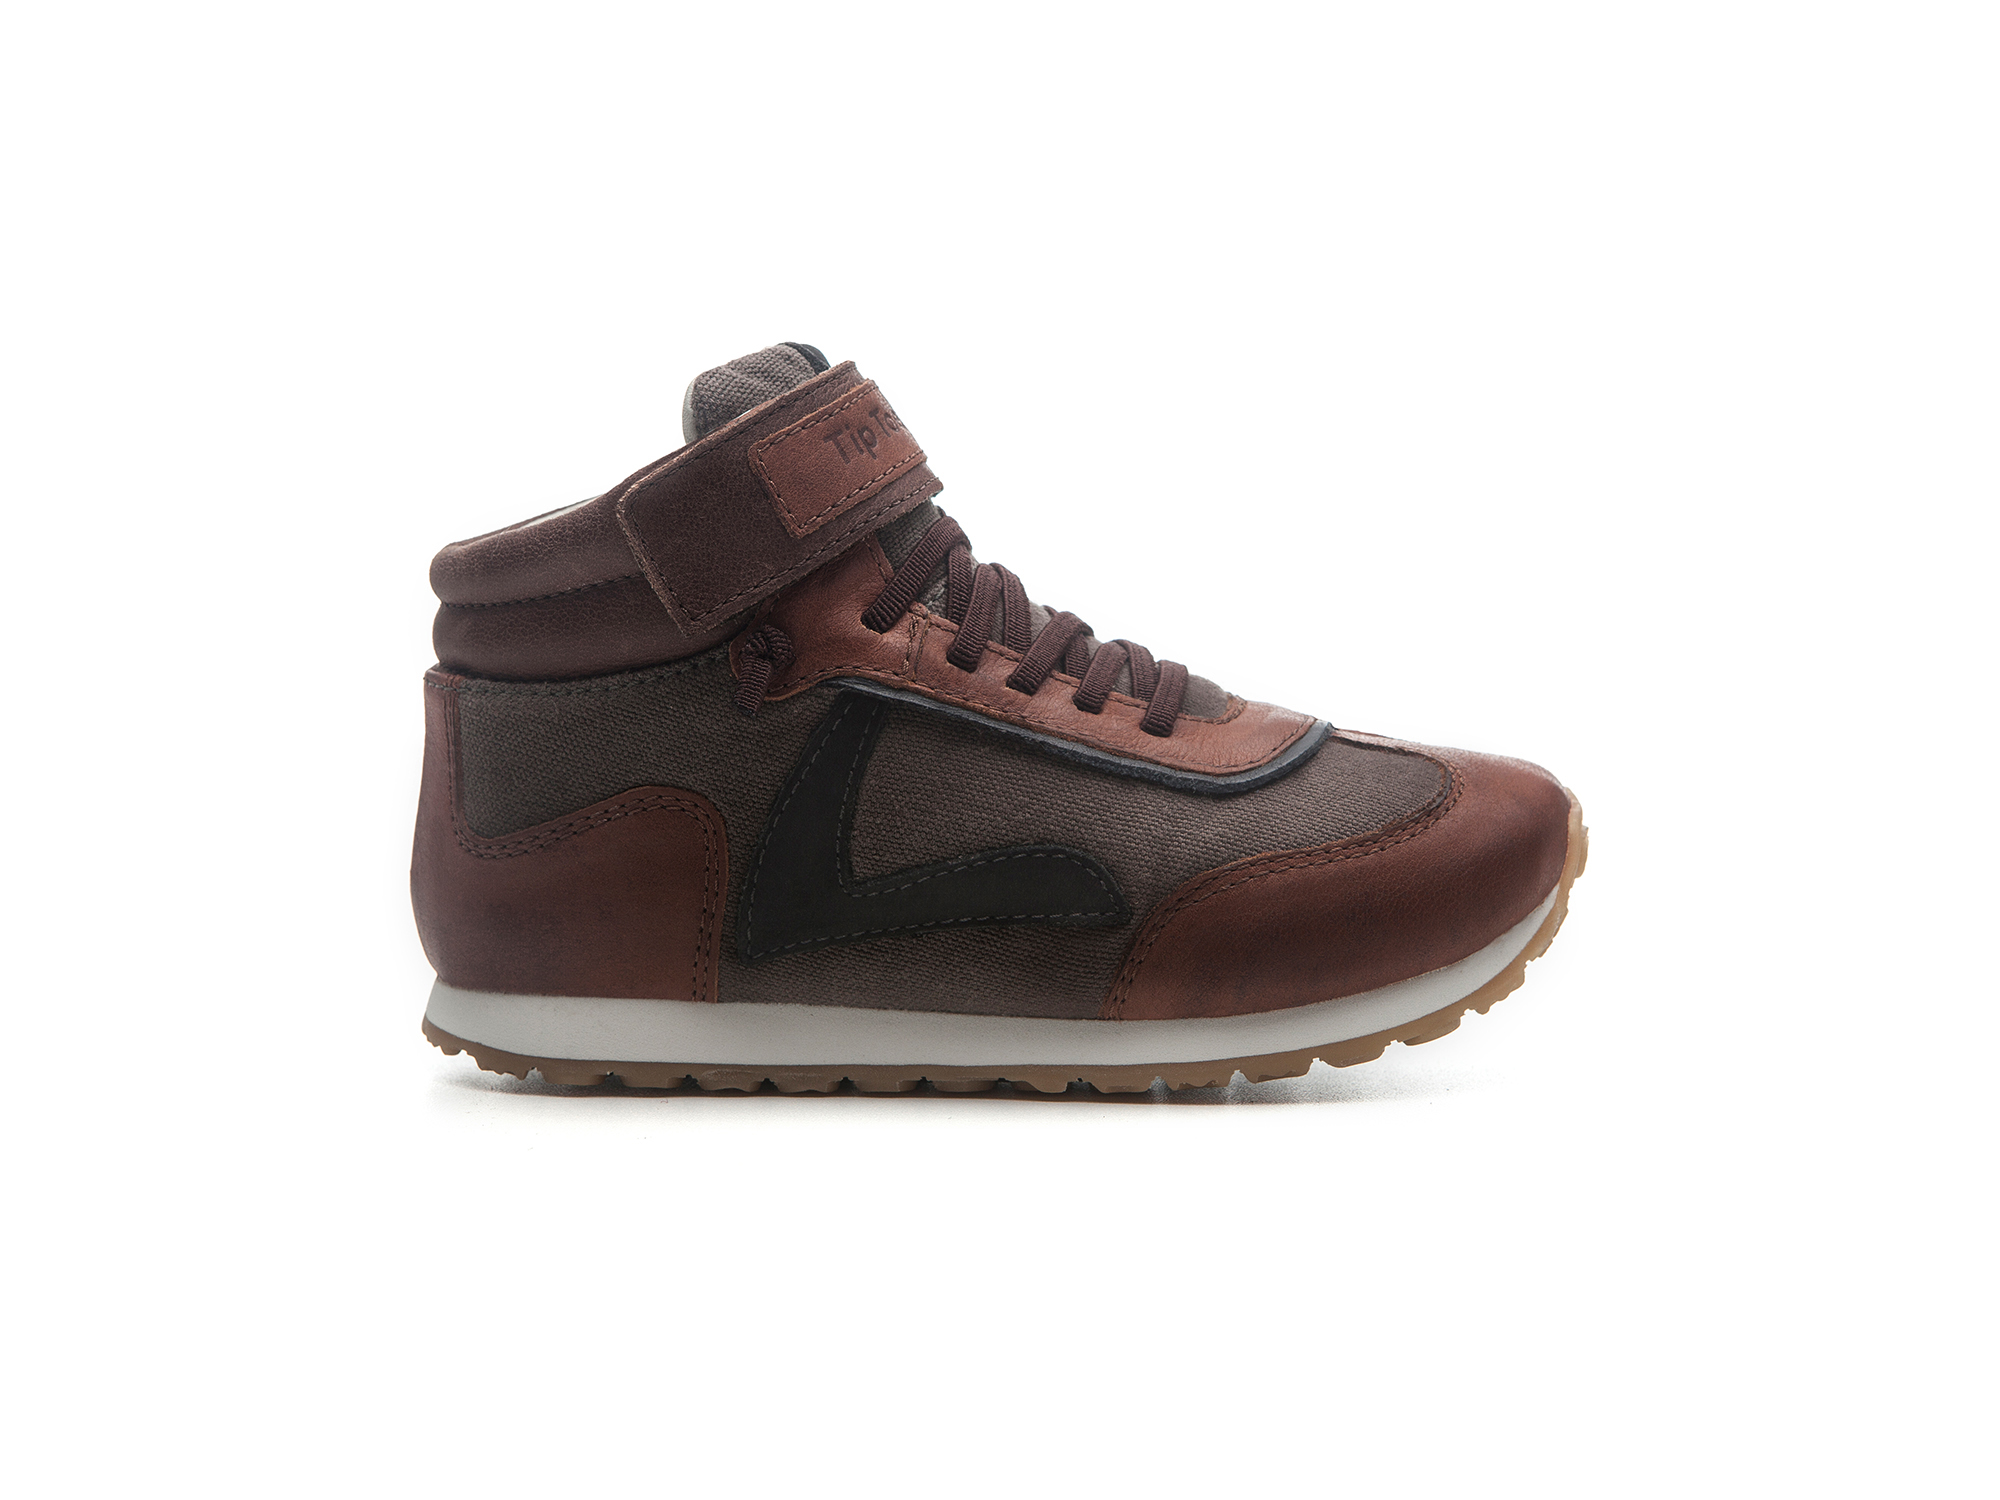 Bota Leap D.grey Canvas/ Burning Wood/ O.brown Junior 4 à 8 anos - 0